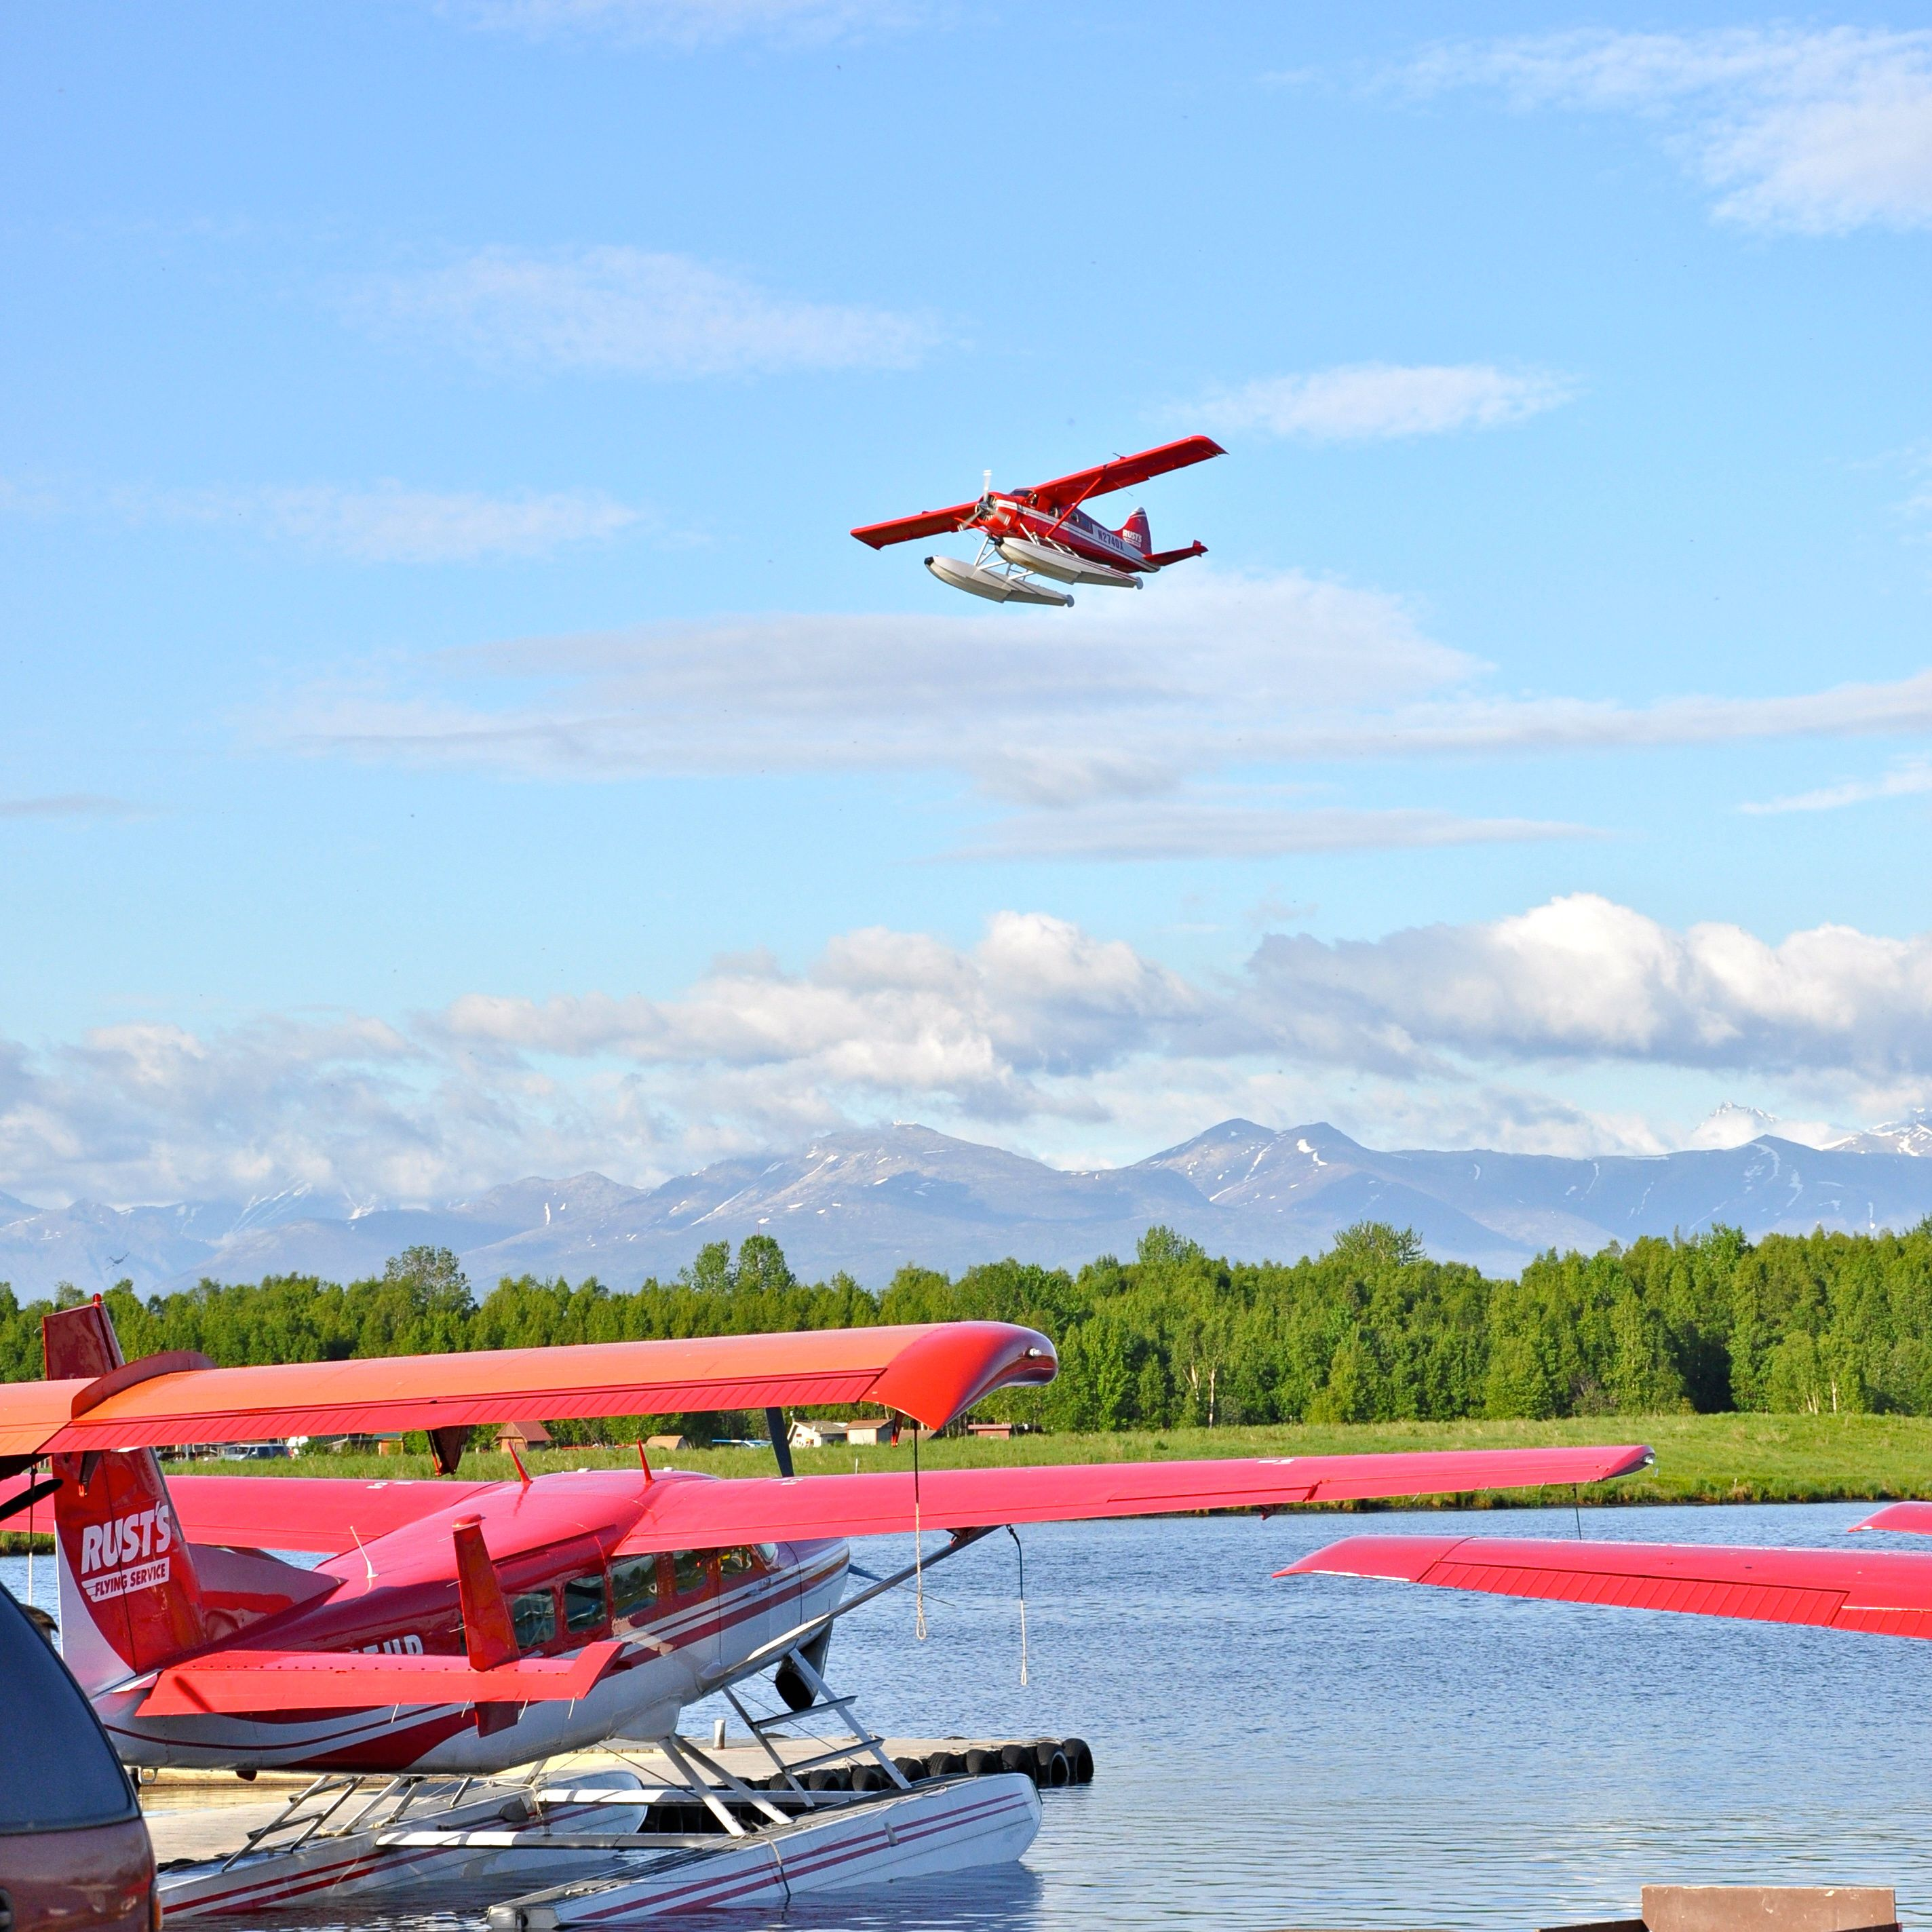 Plane preparing to land on lake containing other planes.